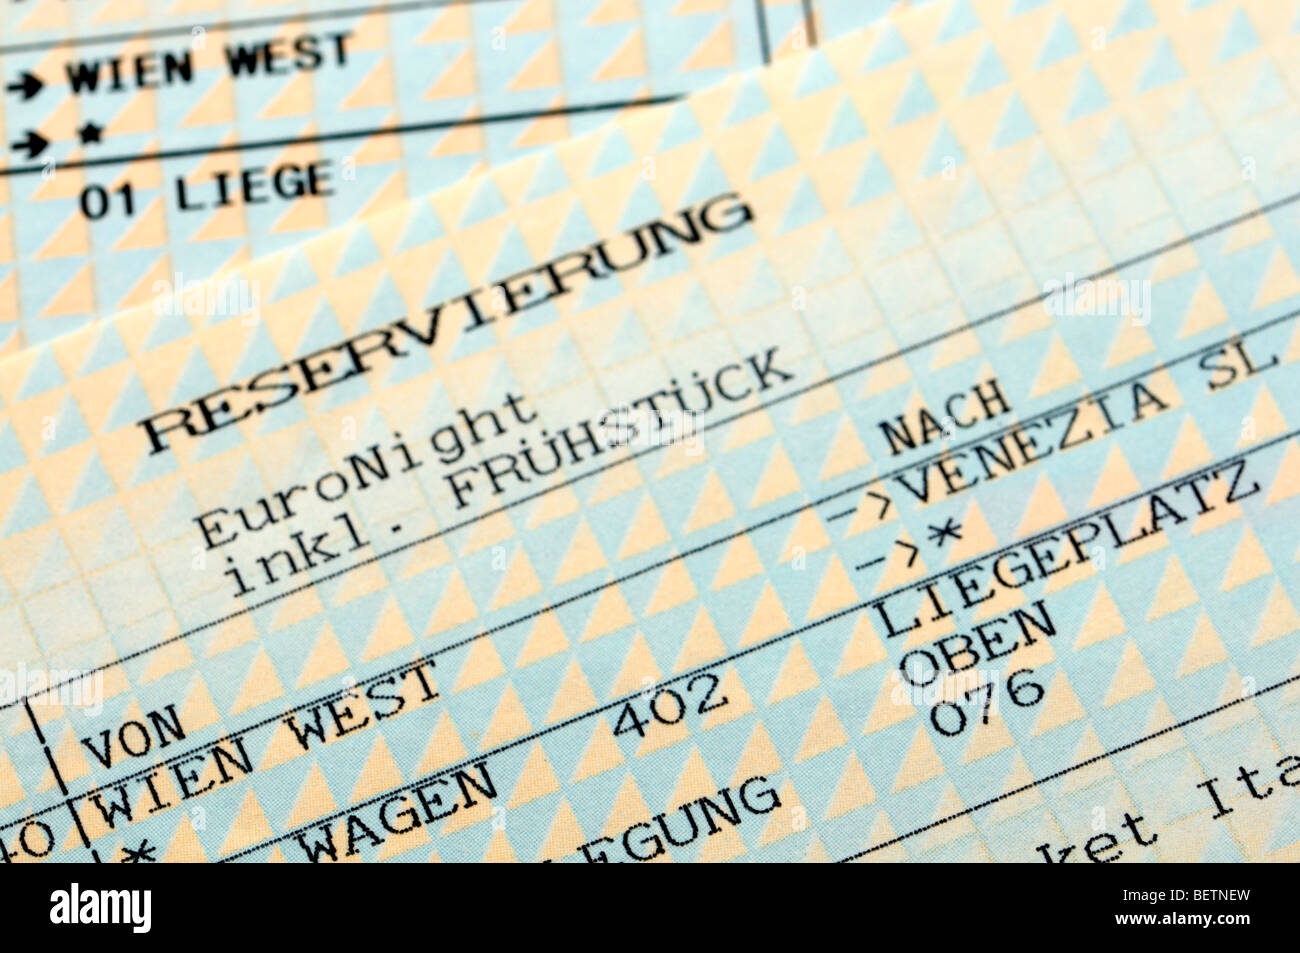 Reservation for a Train Couchette from Vienna to Venice ('incl breakfast') - Stock Image